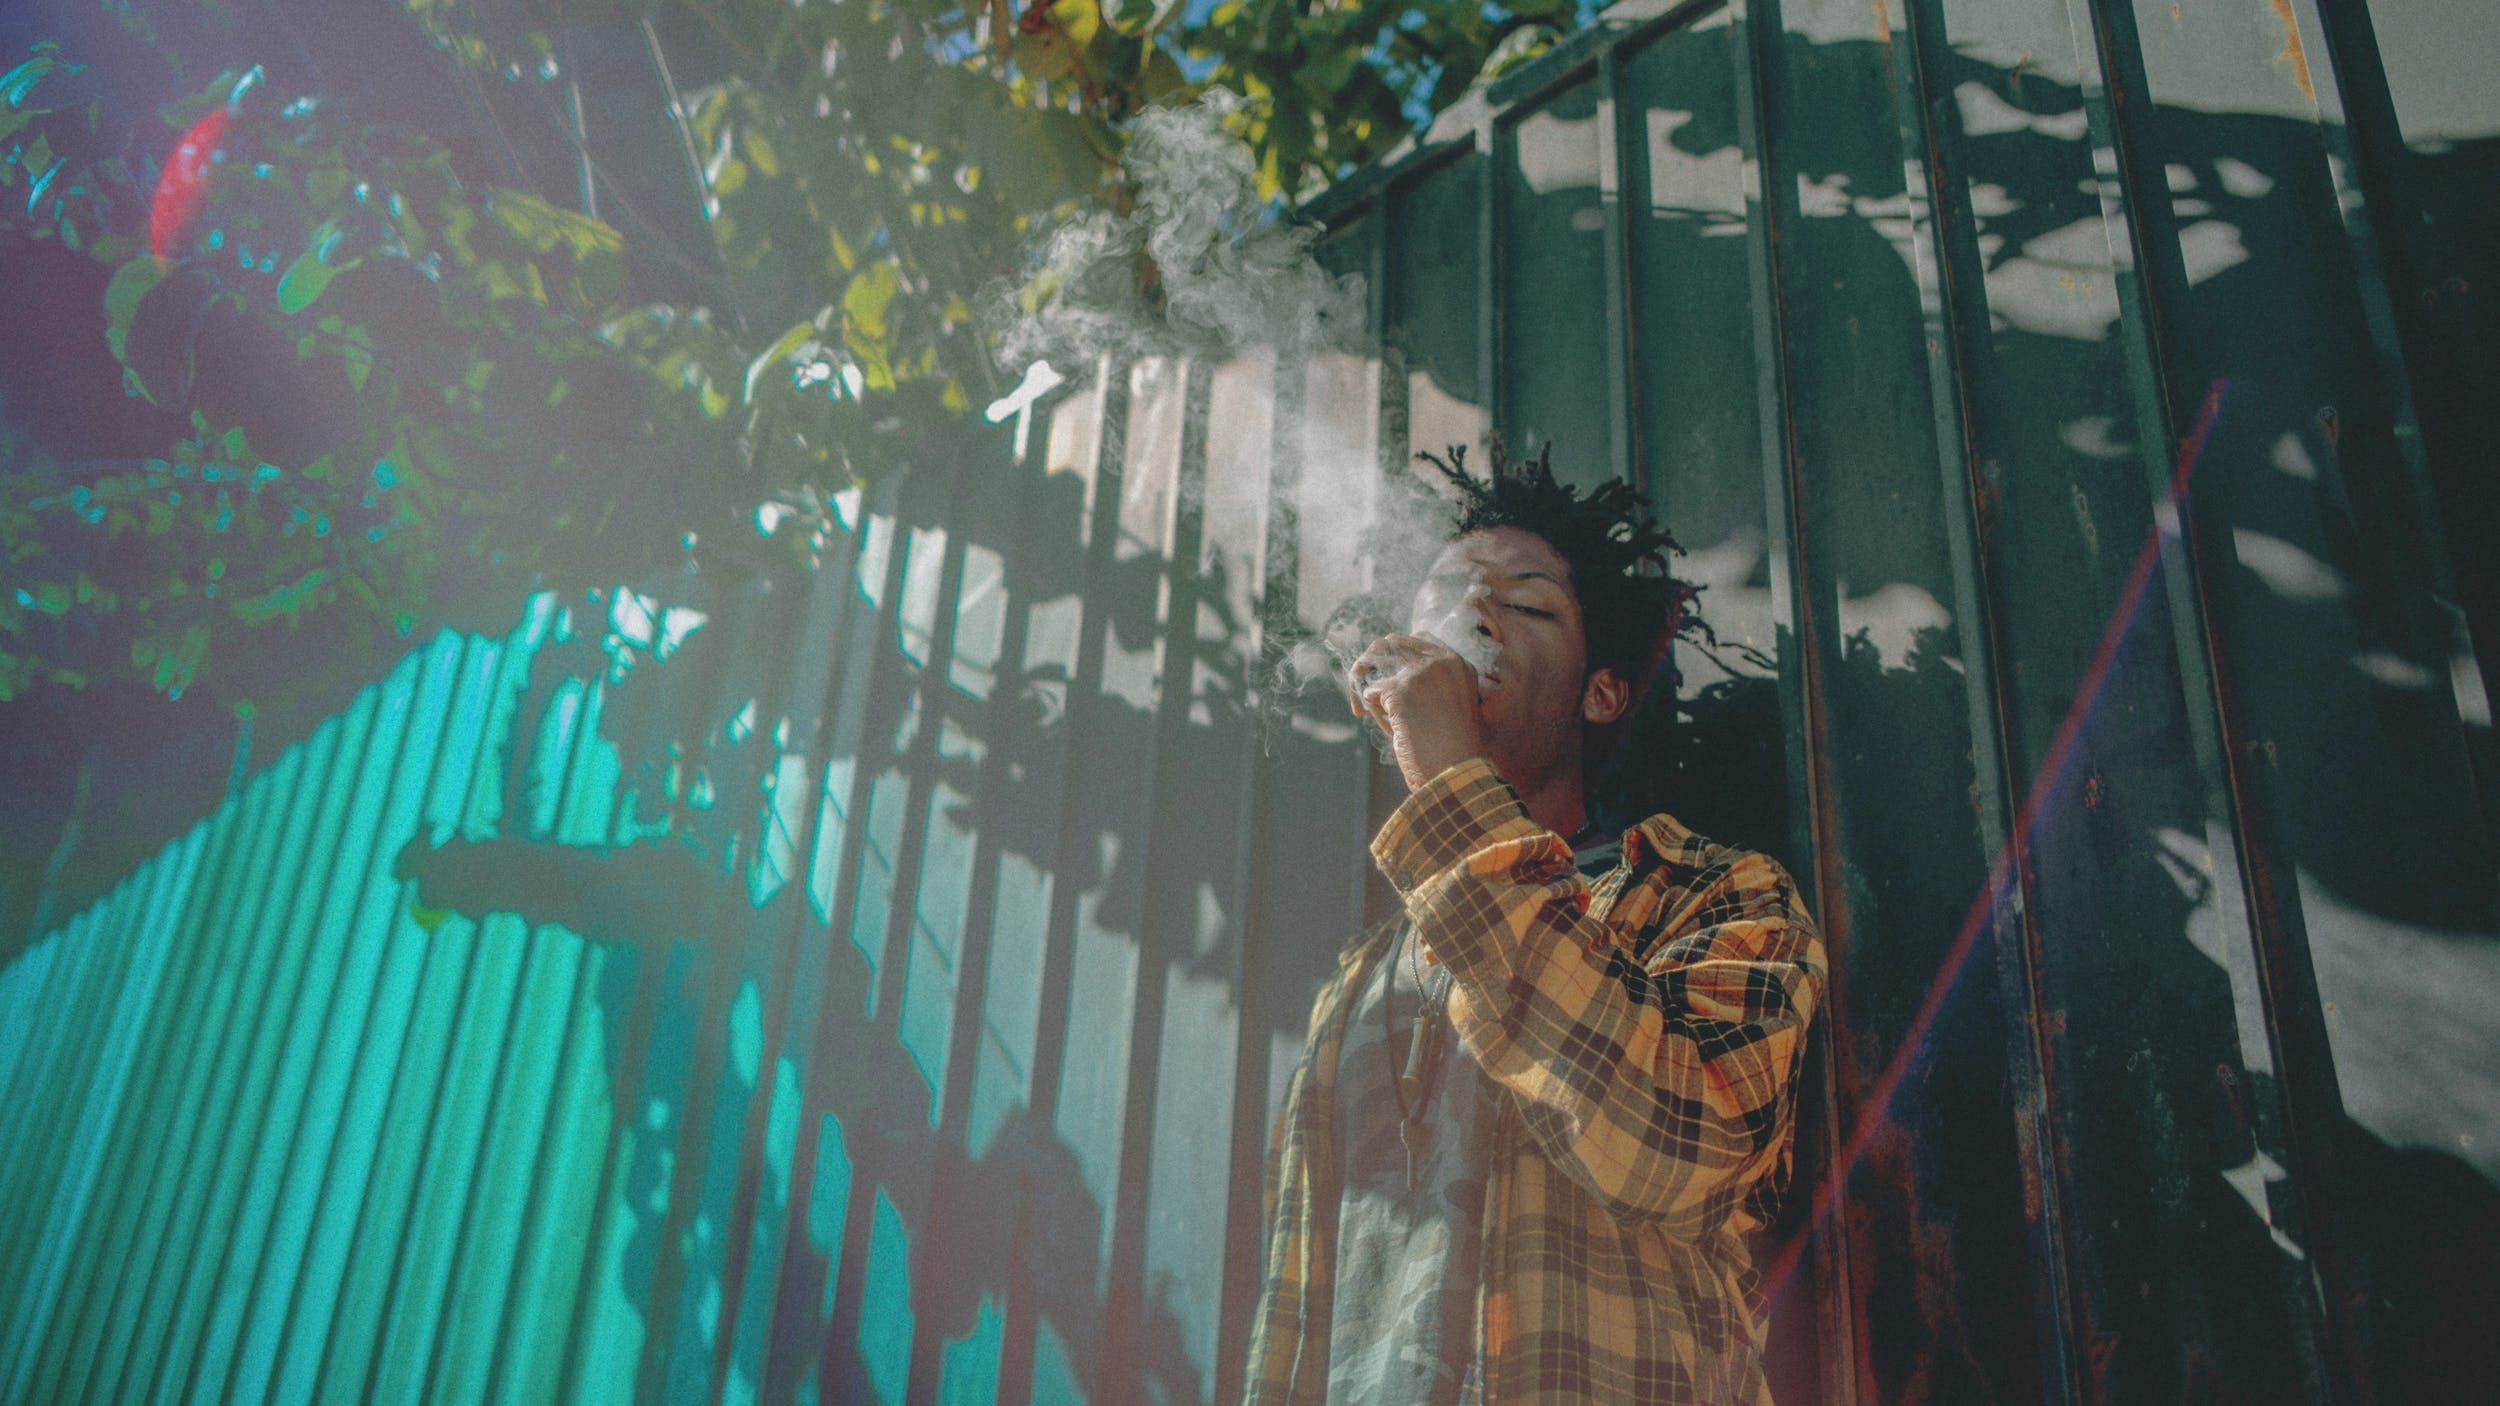 A man leans against a fence and enjoys one of the best weed vaporizers